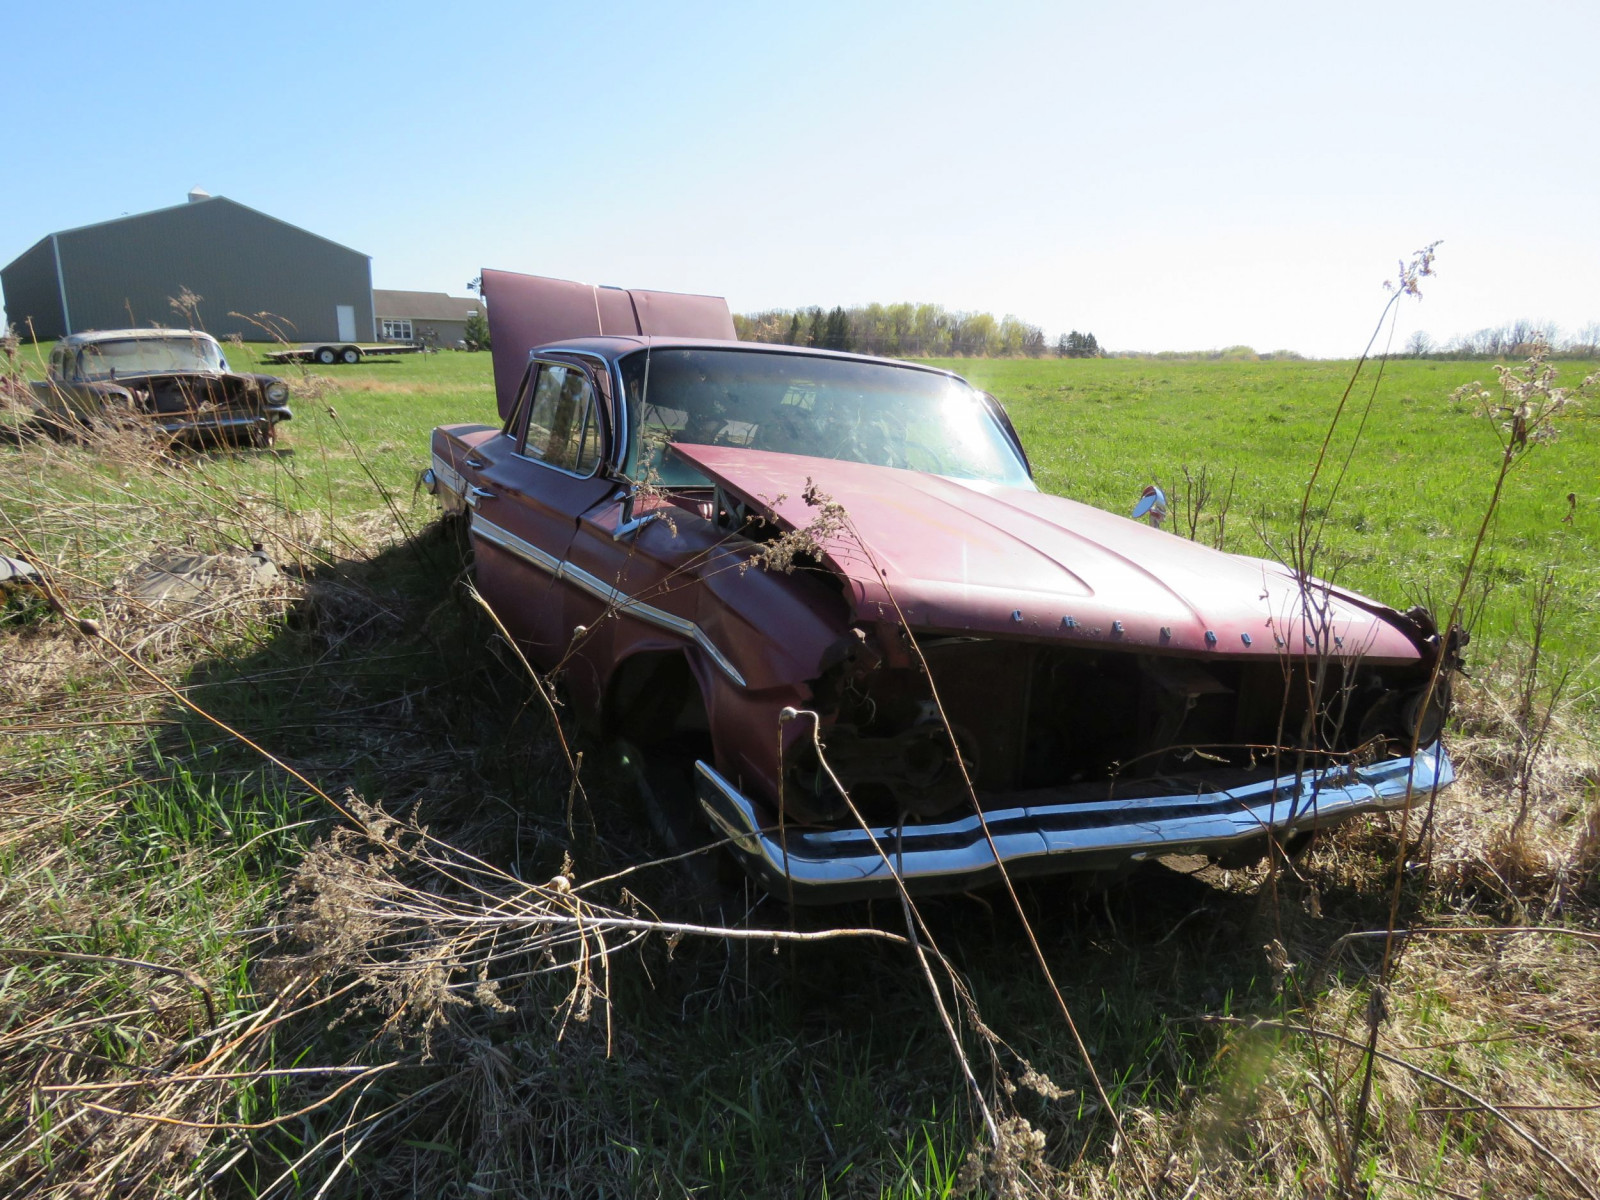 1961 Chevrolet 4dr Sedan parts only - Image 1